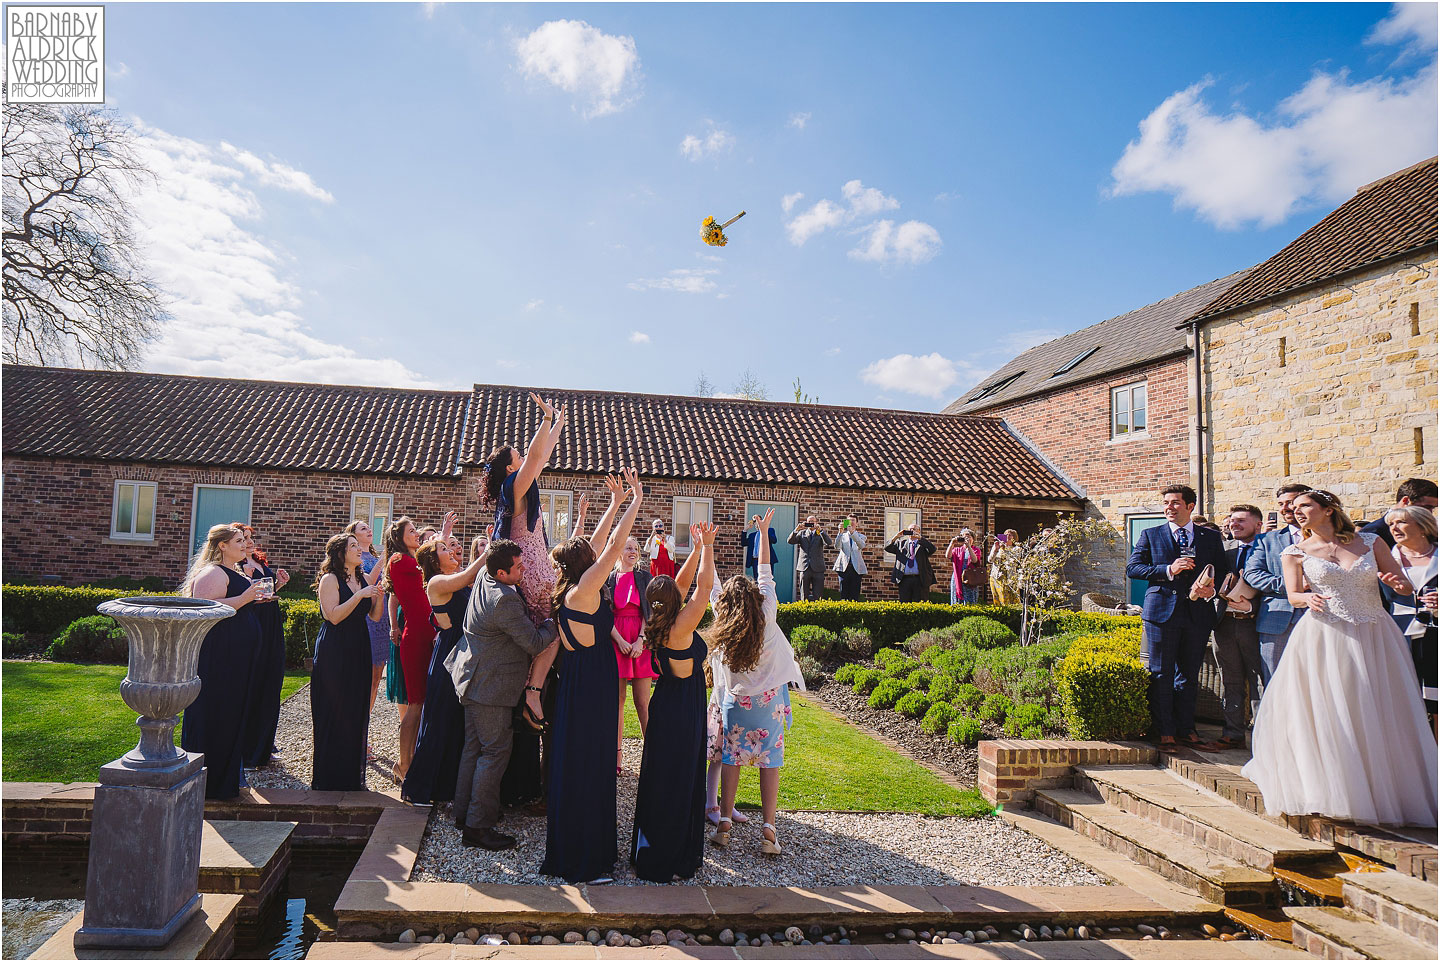 Priory Cottages bouquet toss photo